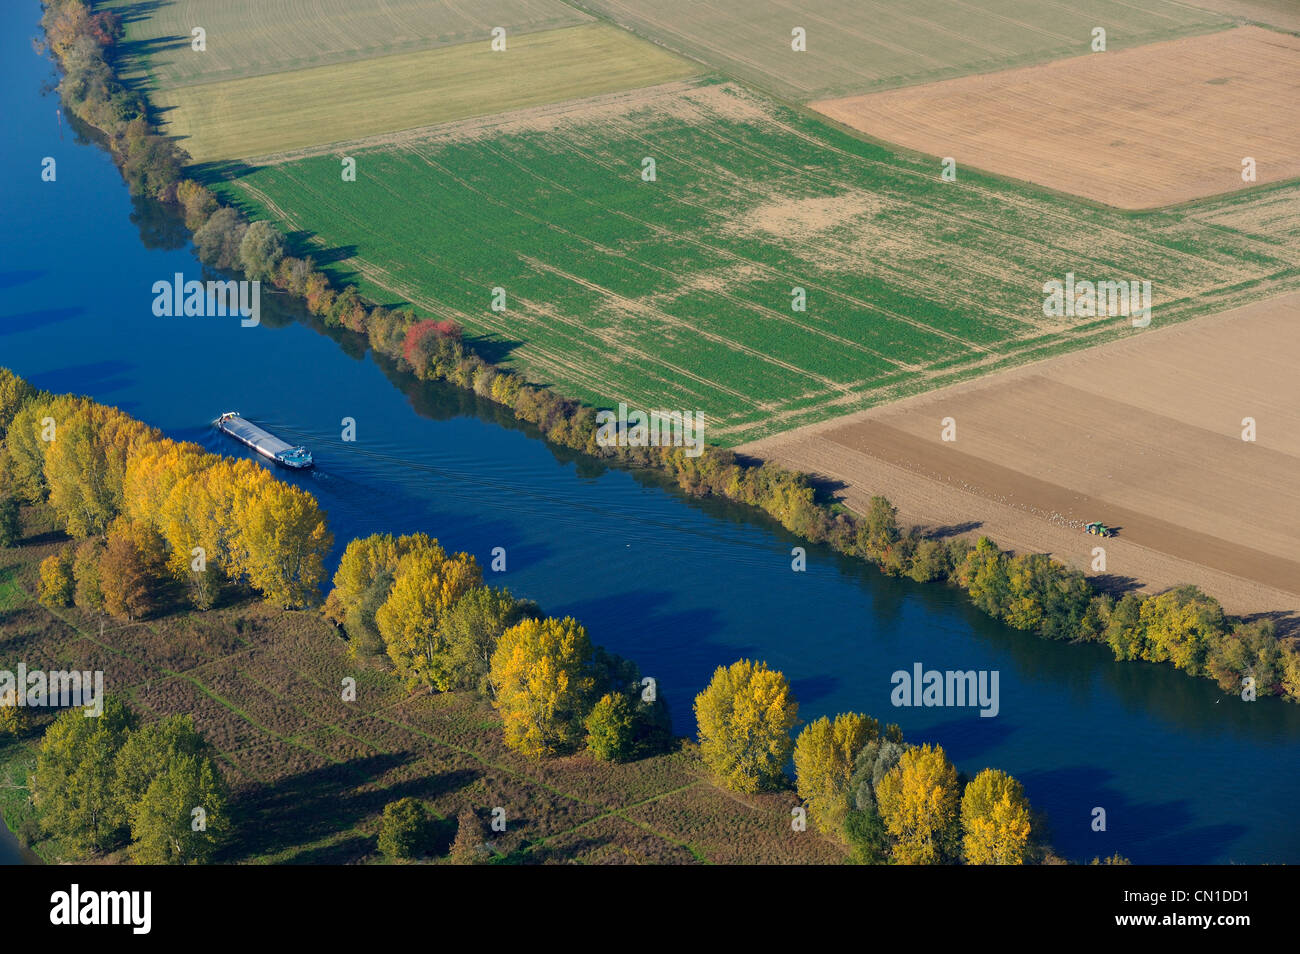 France, Eure, barge on the Seine river around Heudebouville, Lormais island (aerial view) - Stock Image